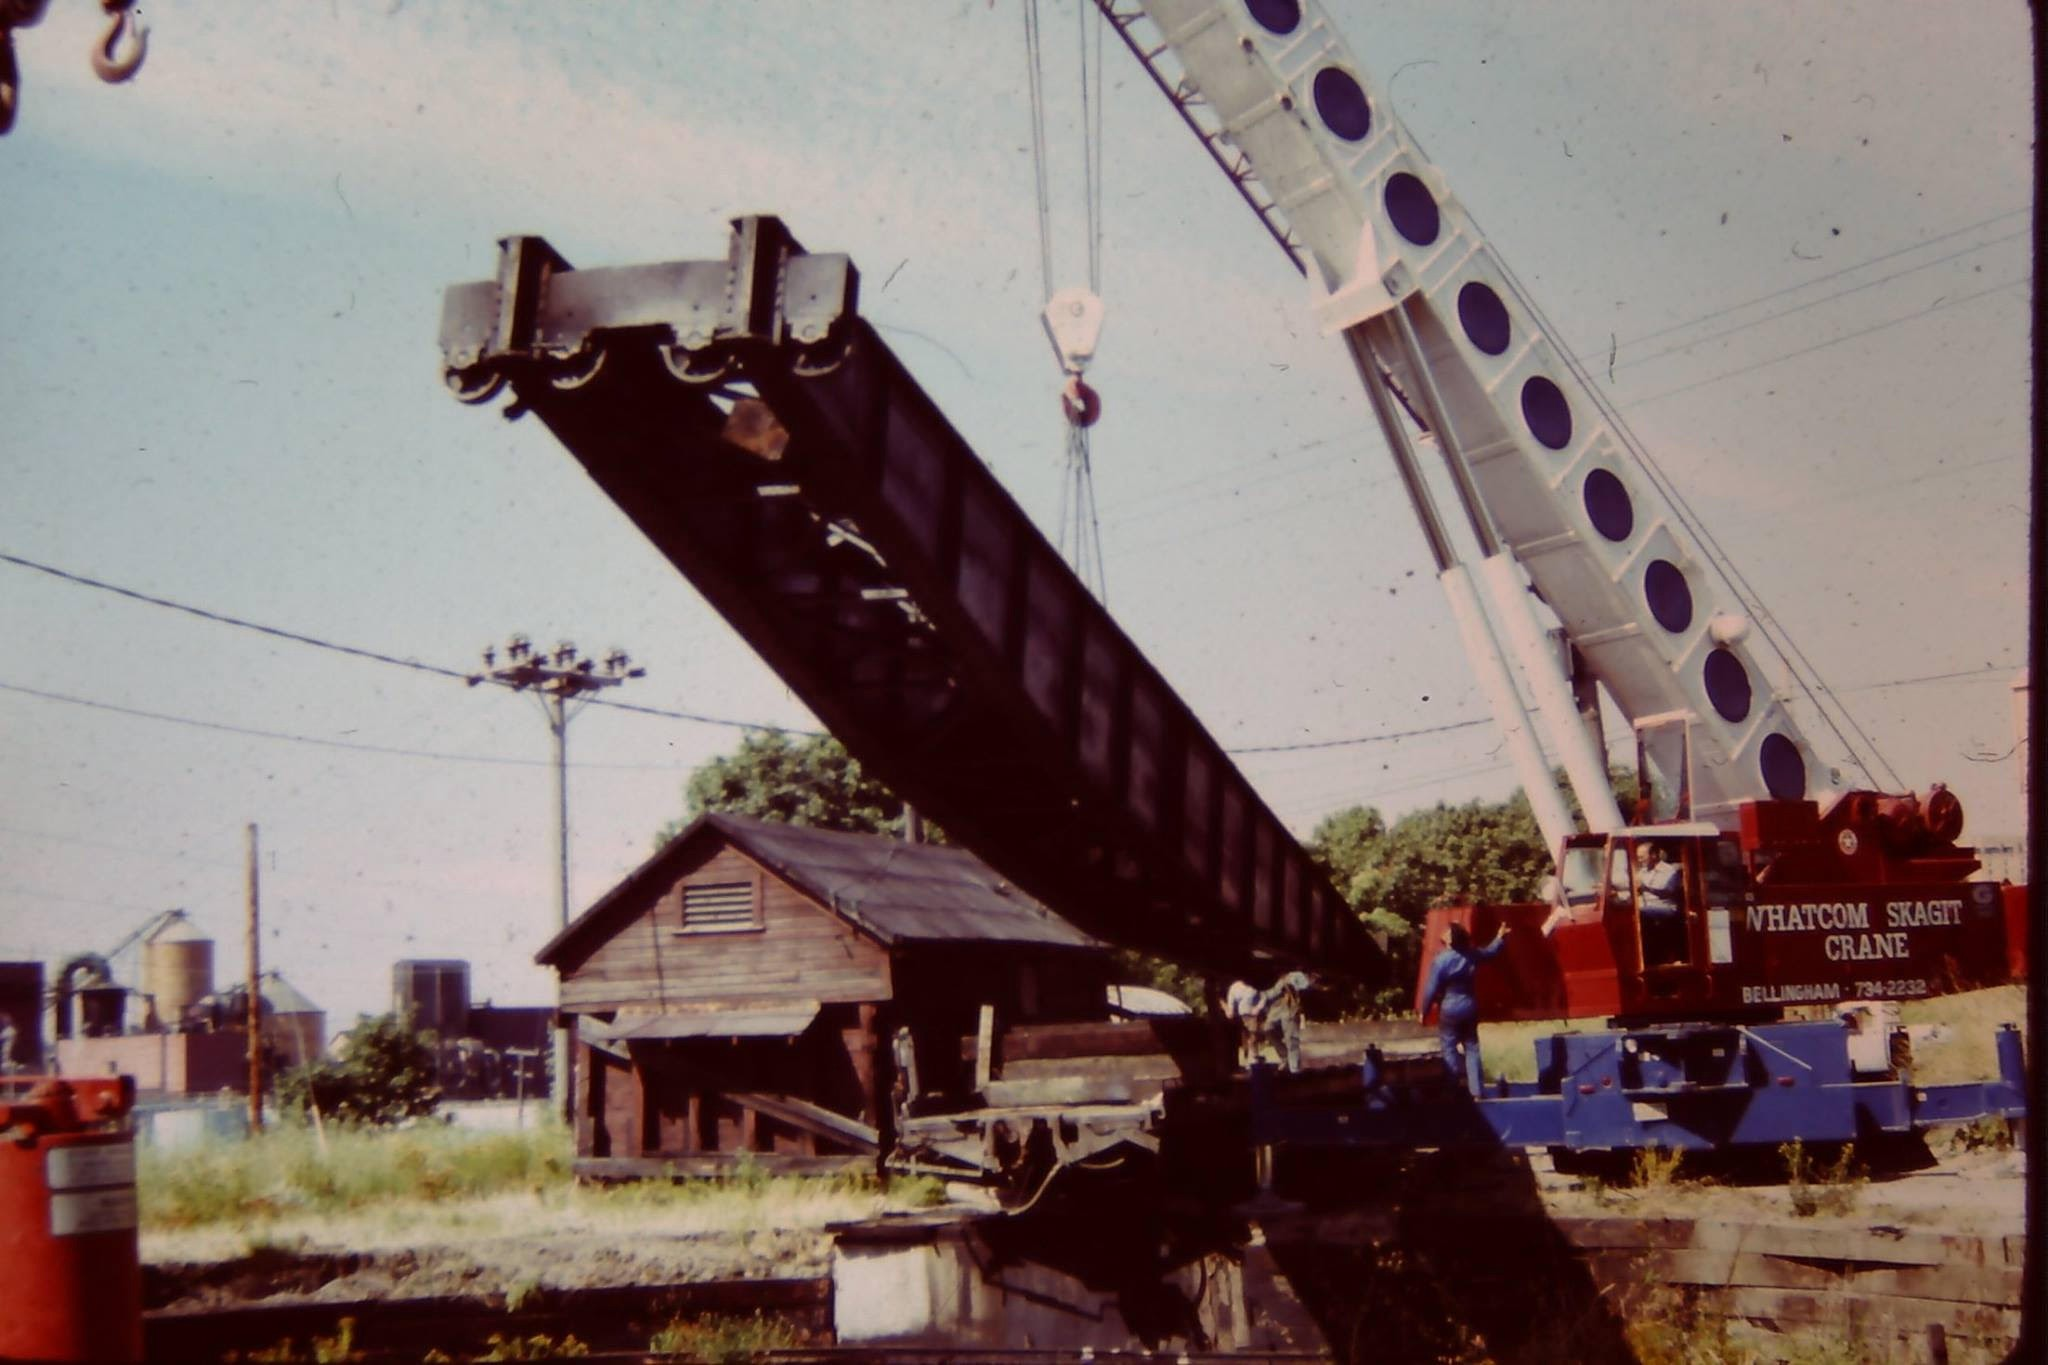 Turntable being pulled into the air by a crane